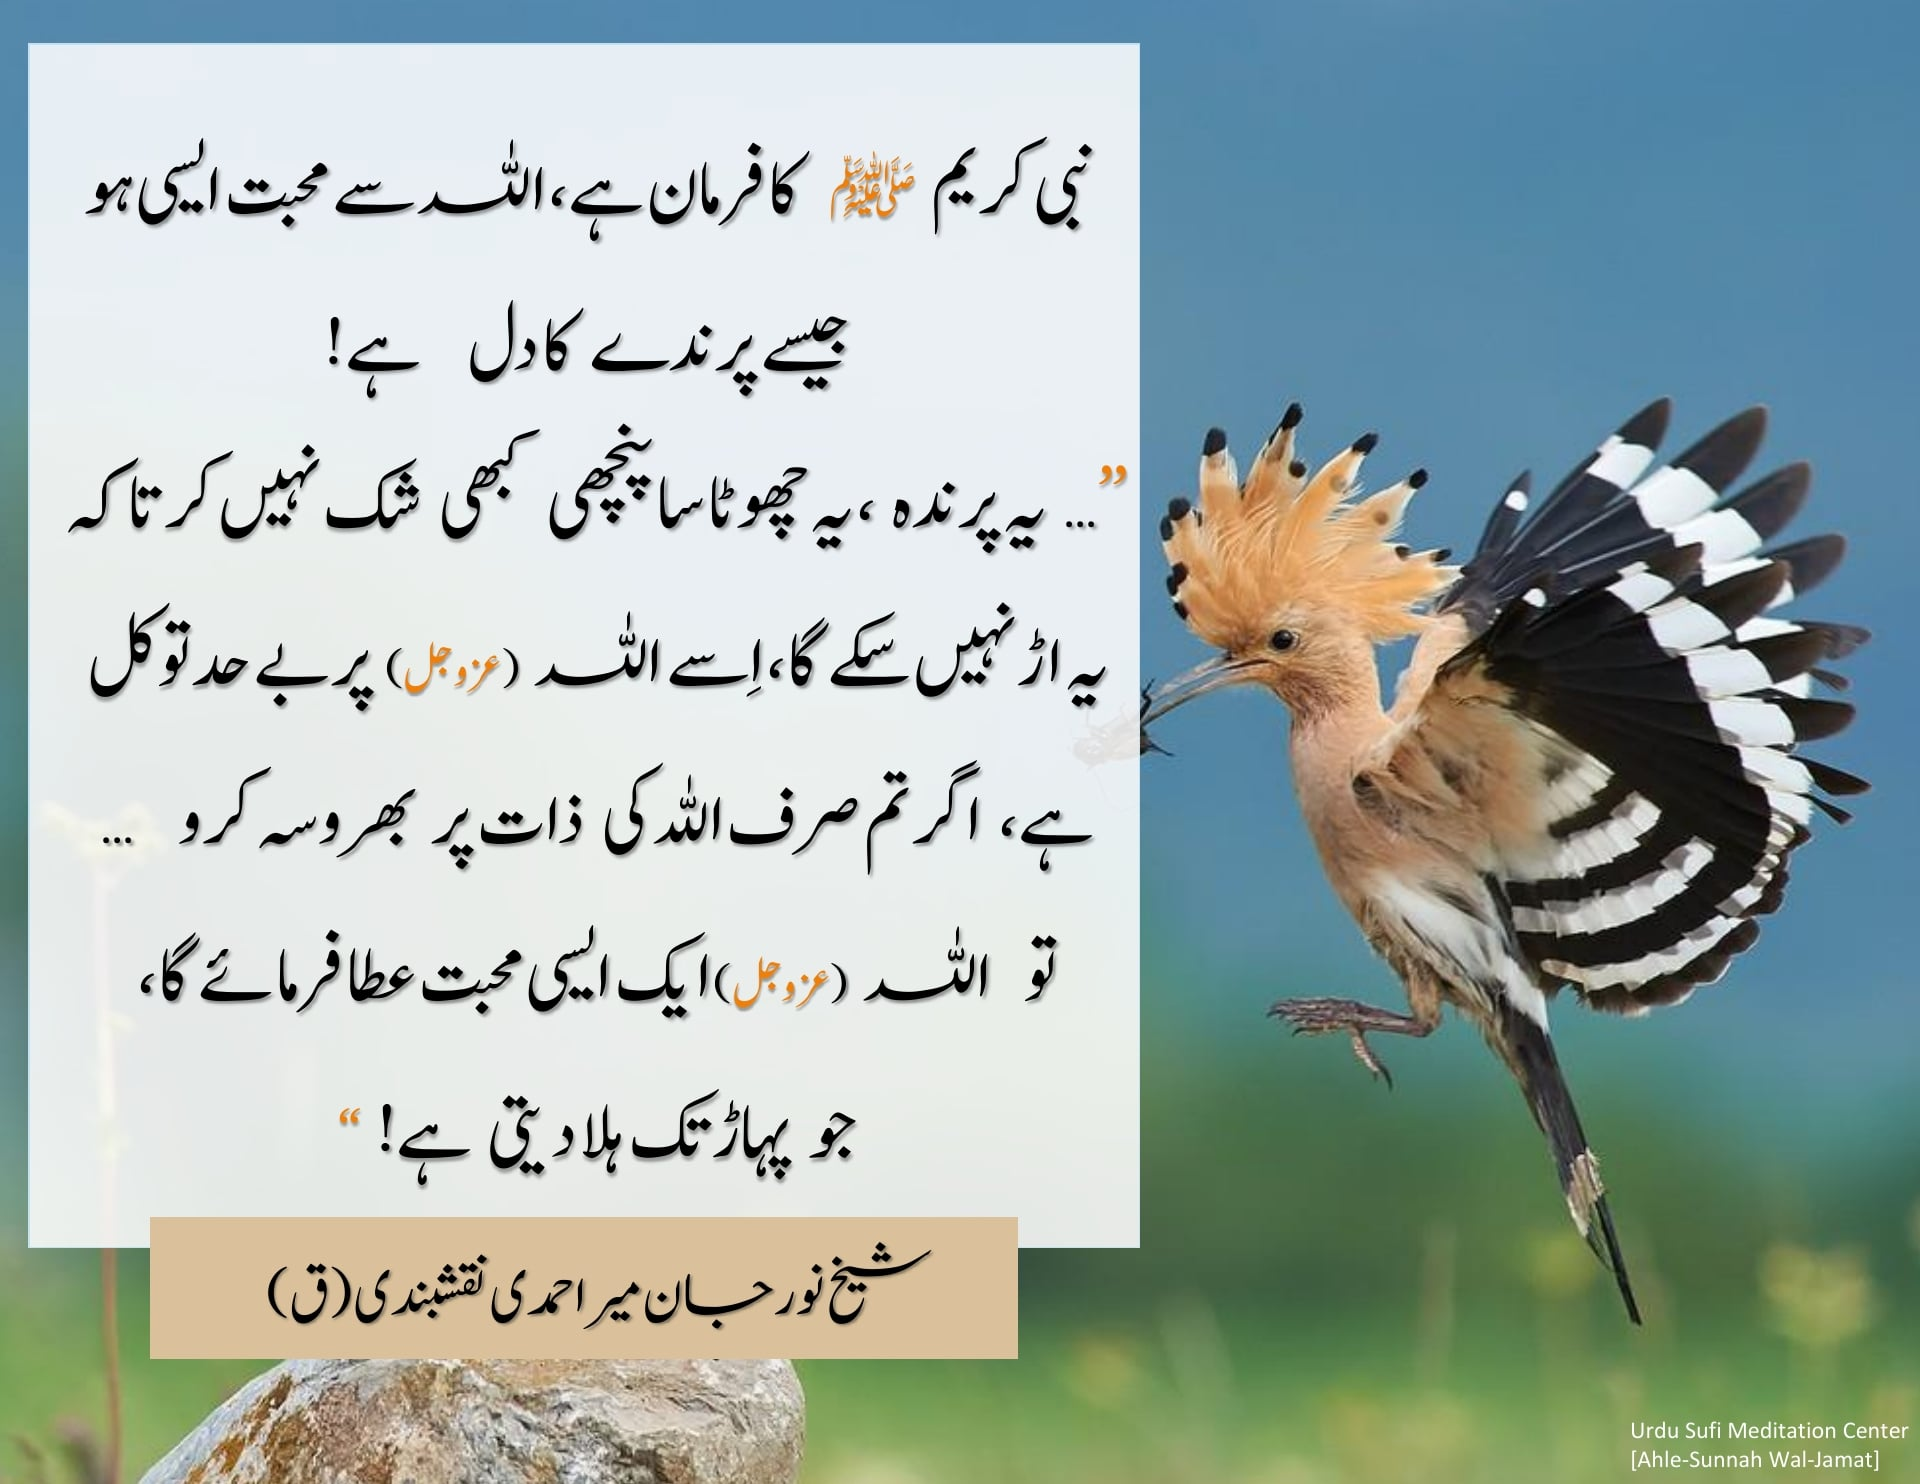 Tawakkul–  Make your Love like the Heart of the Bird    نبی کریم ﷺ نے صحابی  سے ...